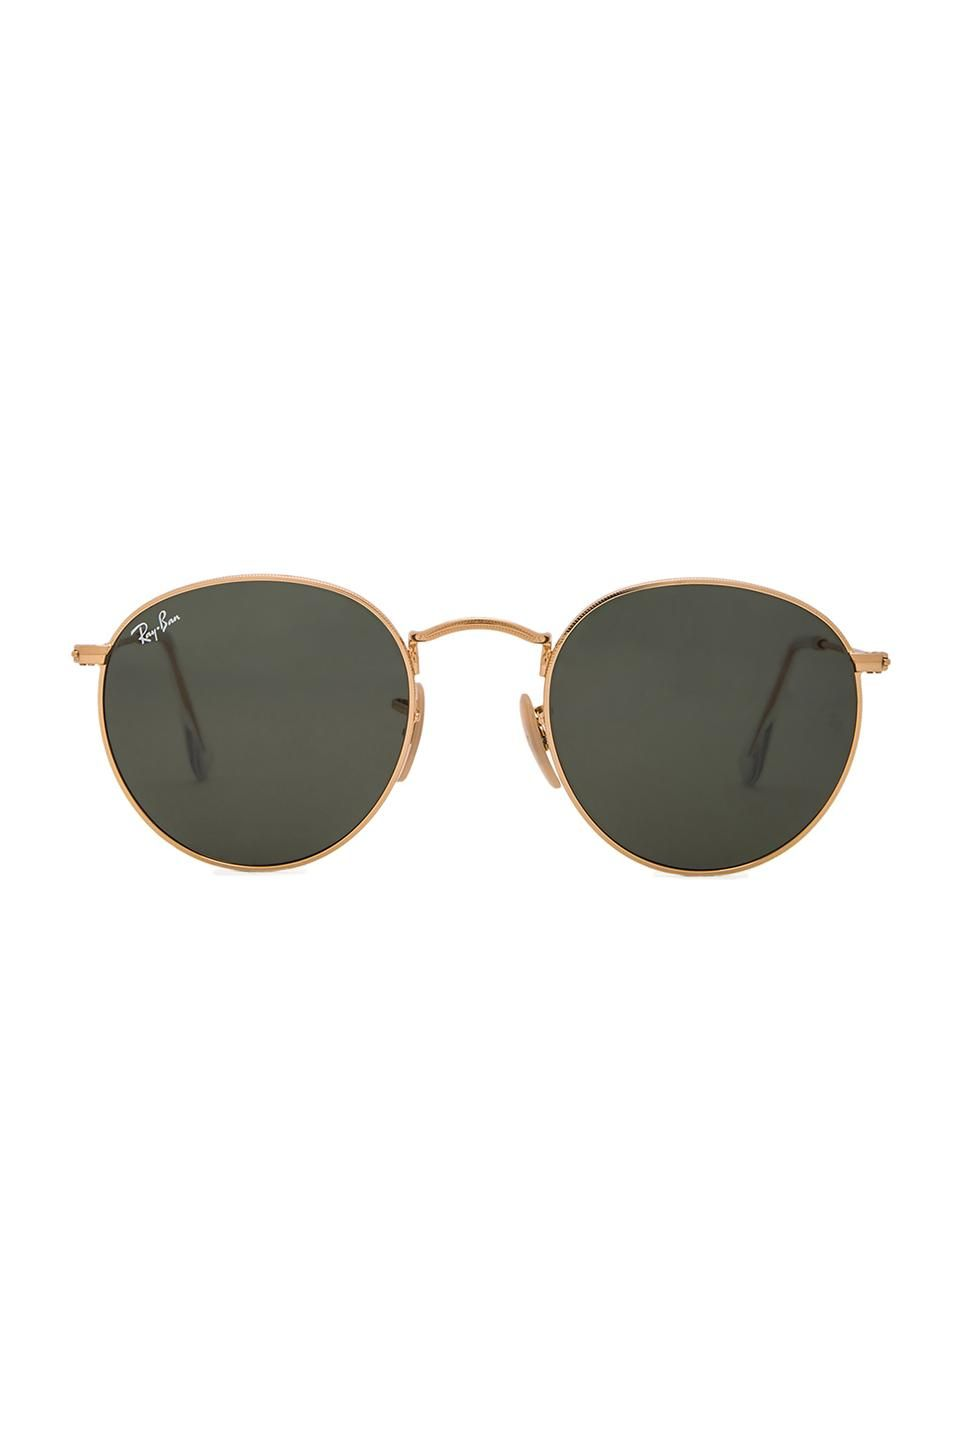 e78af63de Ray-Ban Round Metal in Green Classic | STYLE in 2019 | Round ray ...